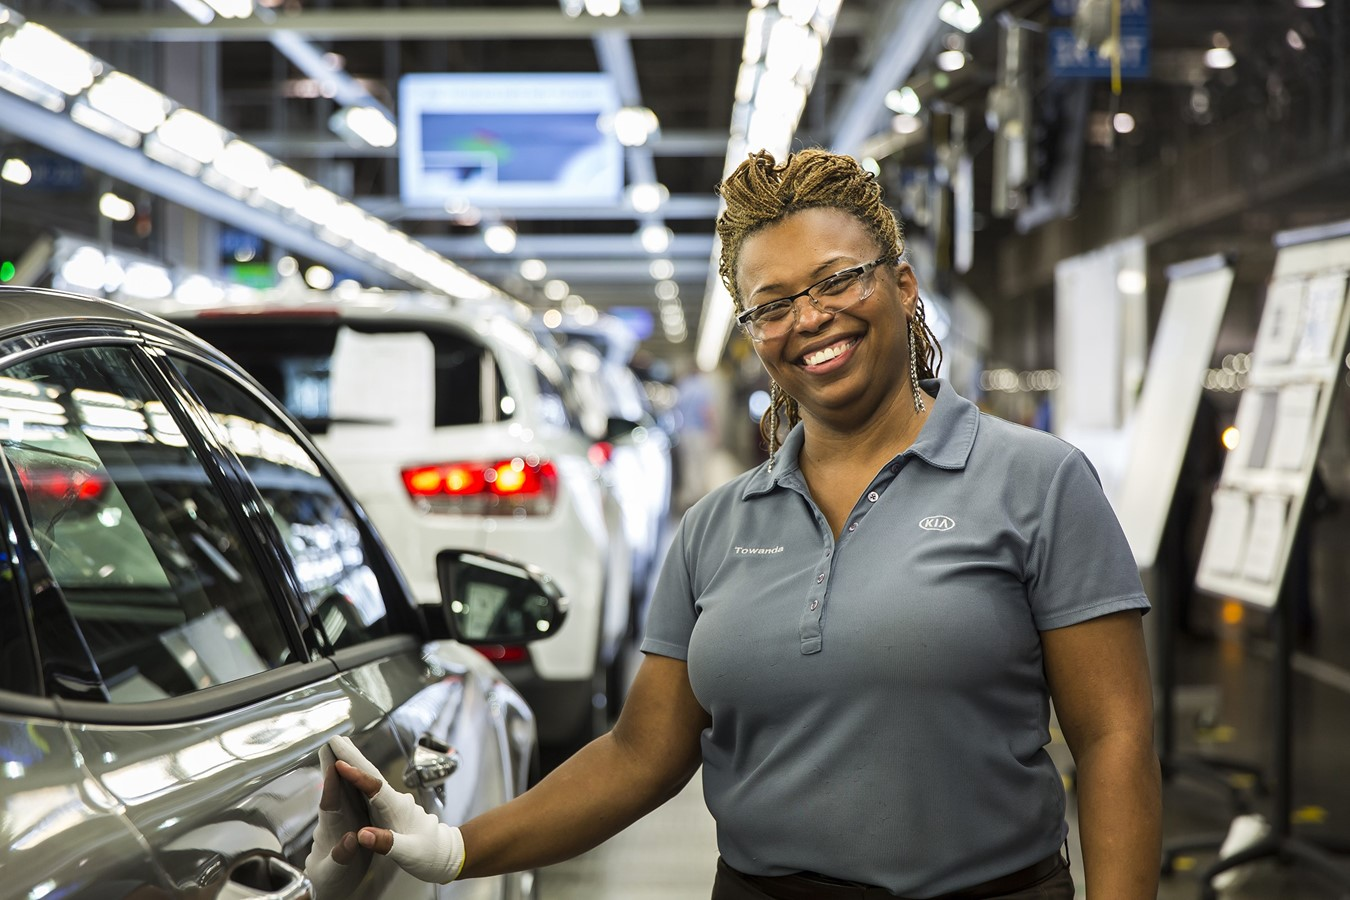 KMMG team members work each day to produce world-class quality products. Just recently, the one millionth Sorento rolled off KMMG's assembly line in West Point, Ga.